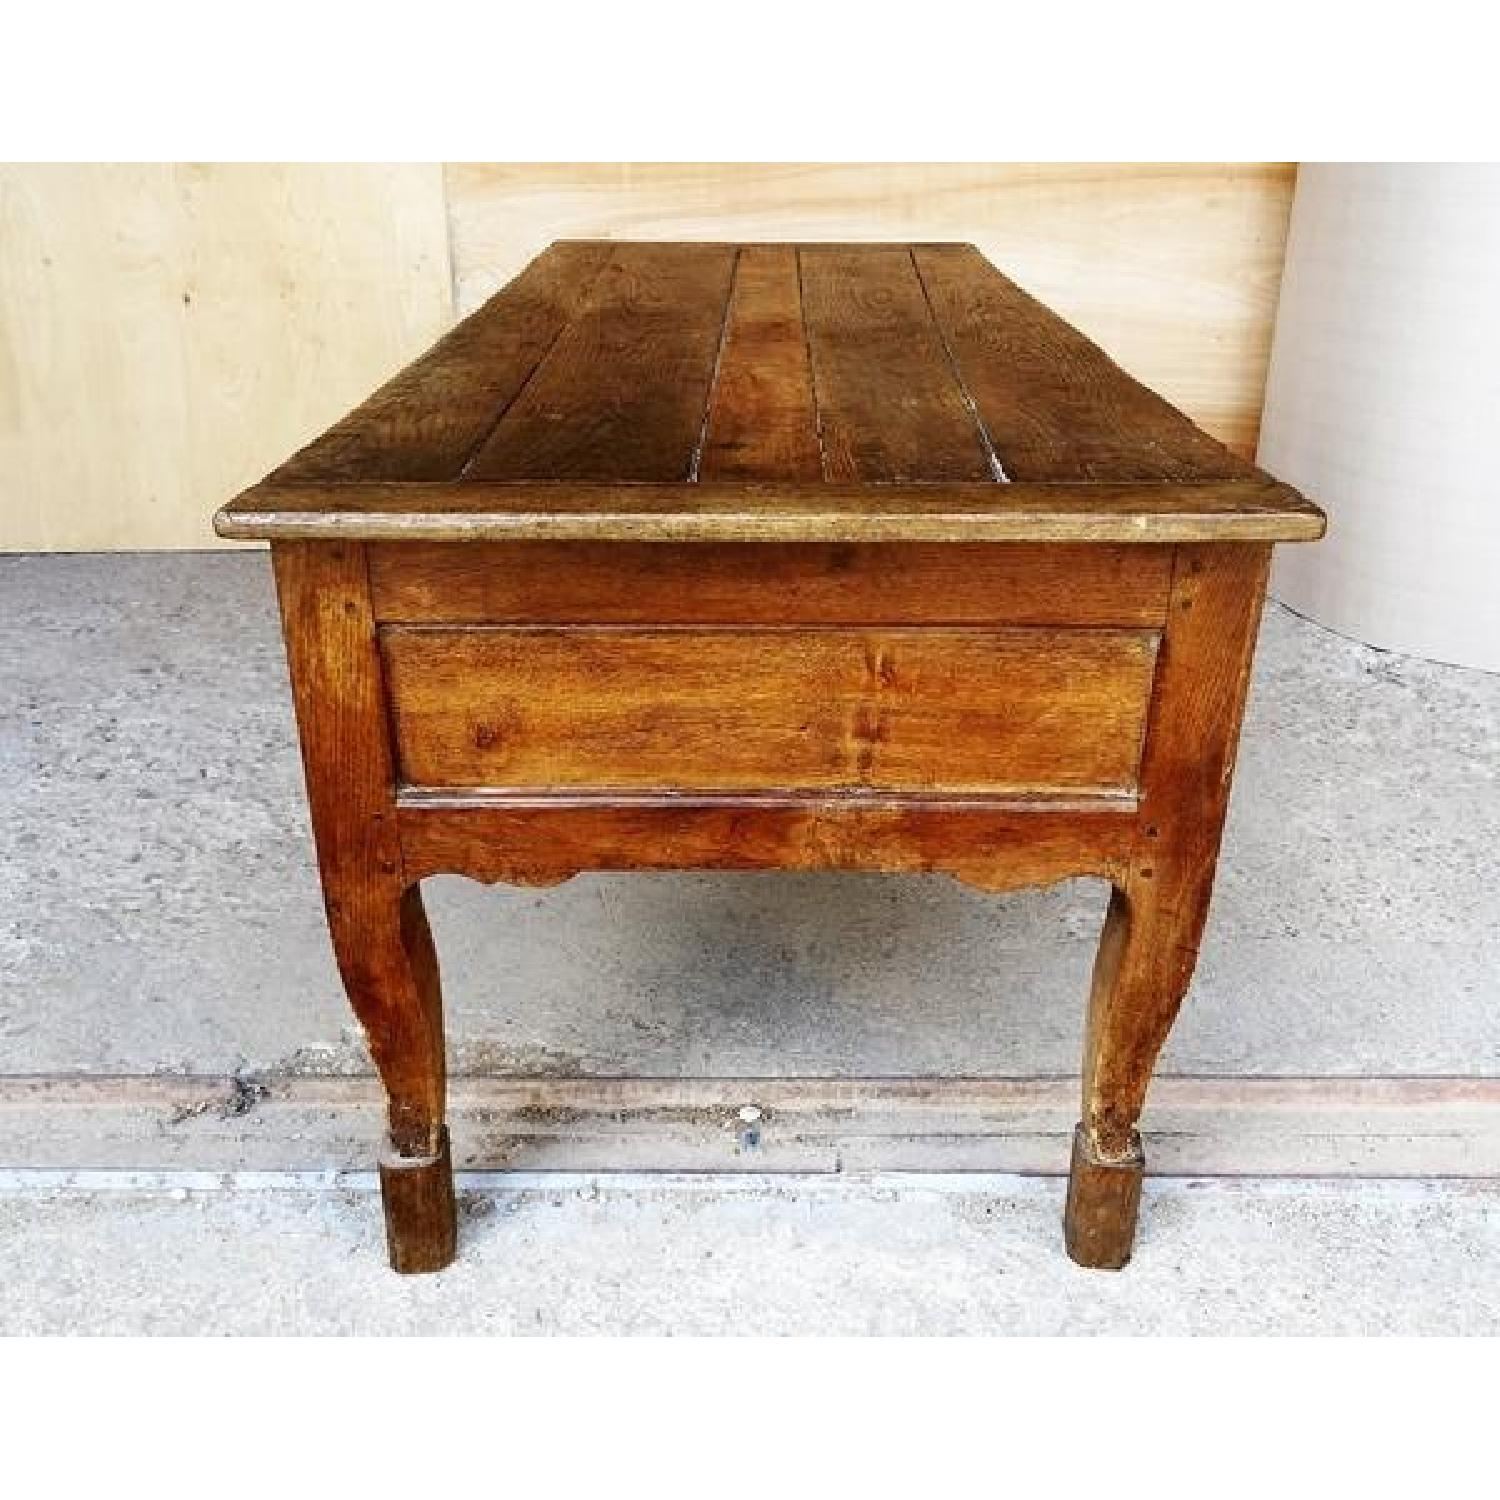 Antique Old Rustic French Country Dining Table